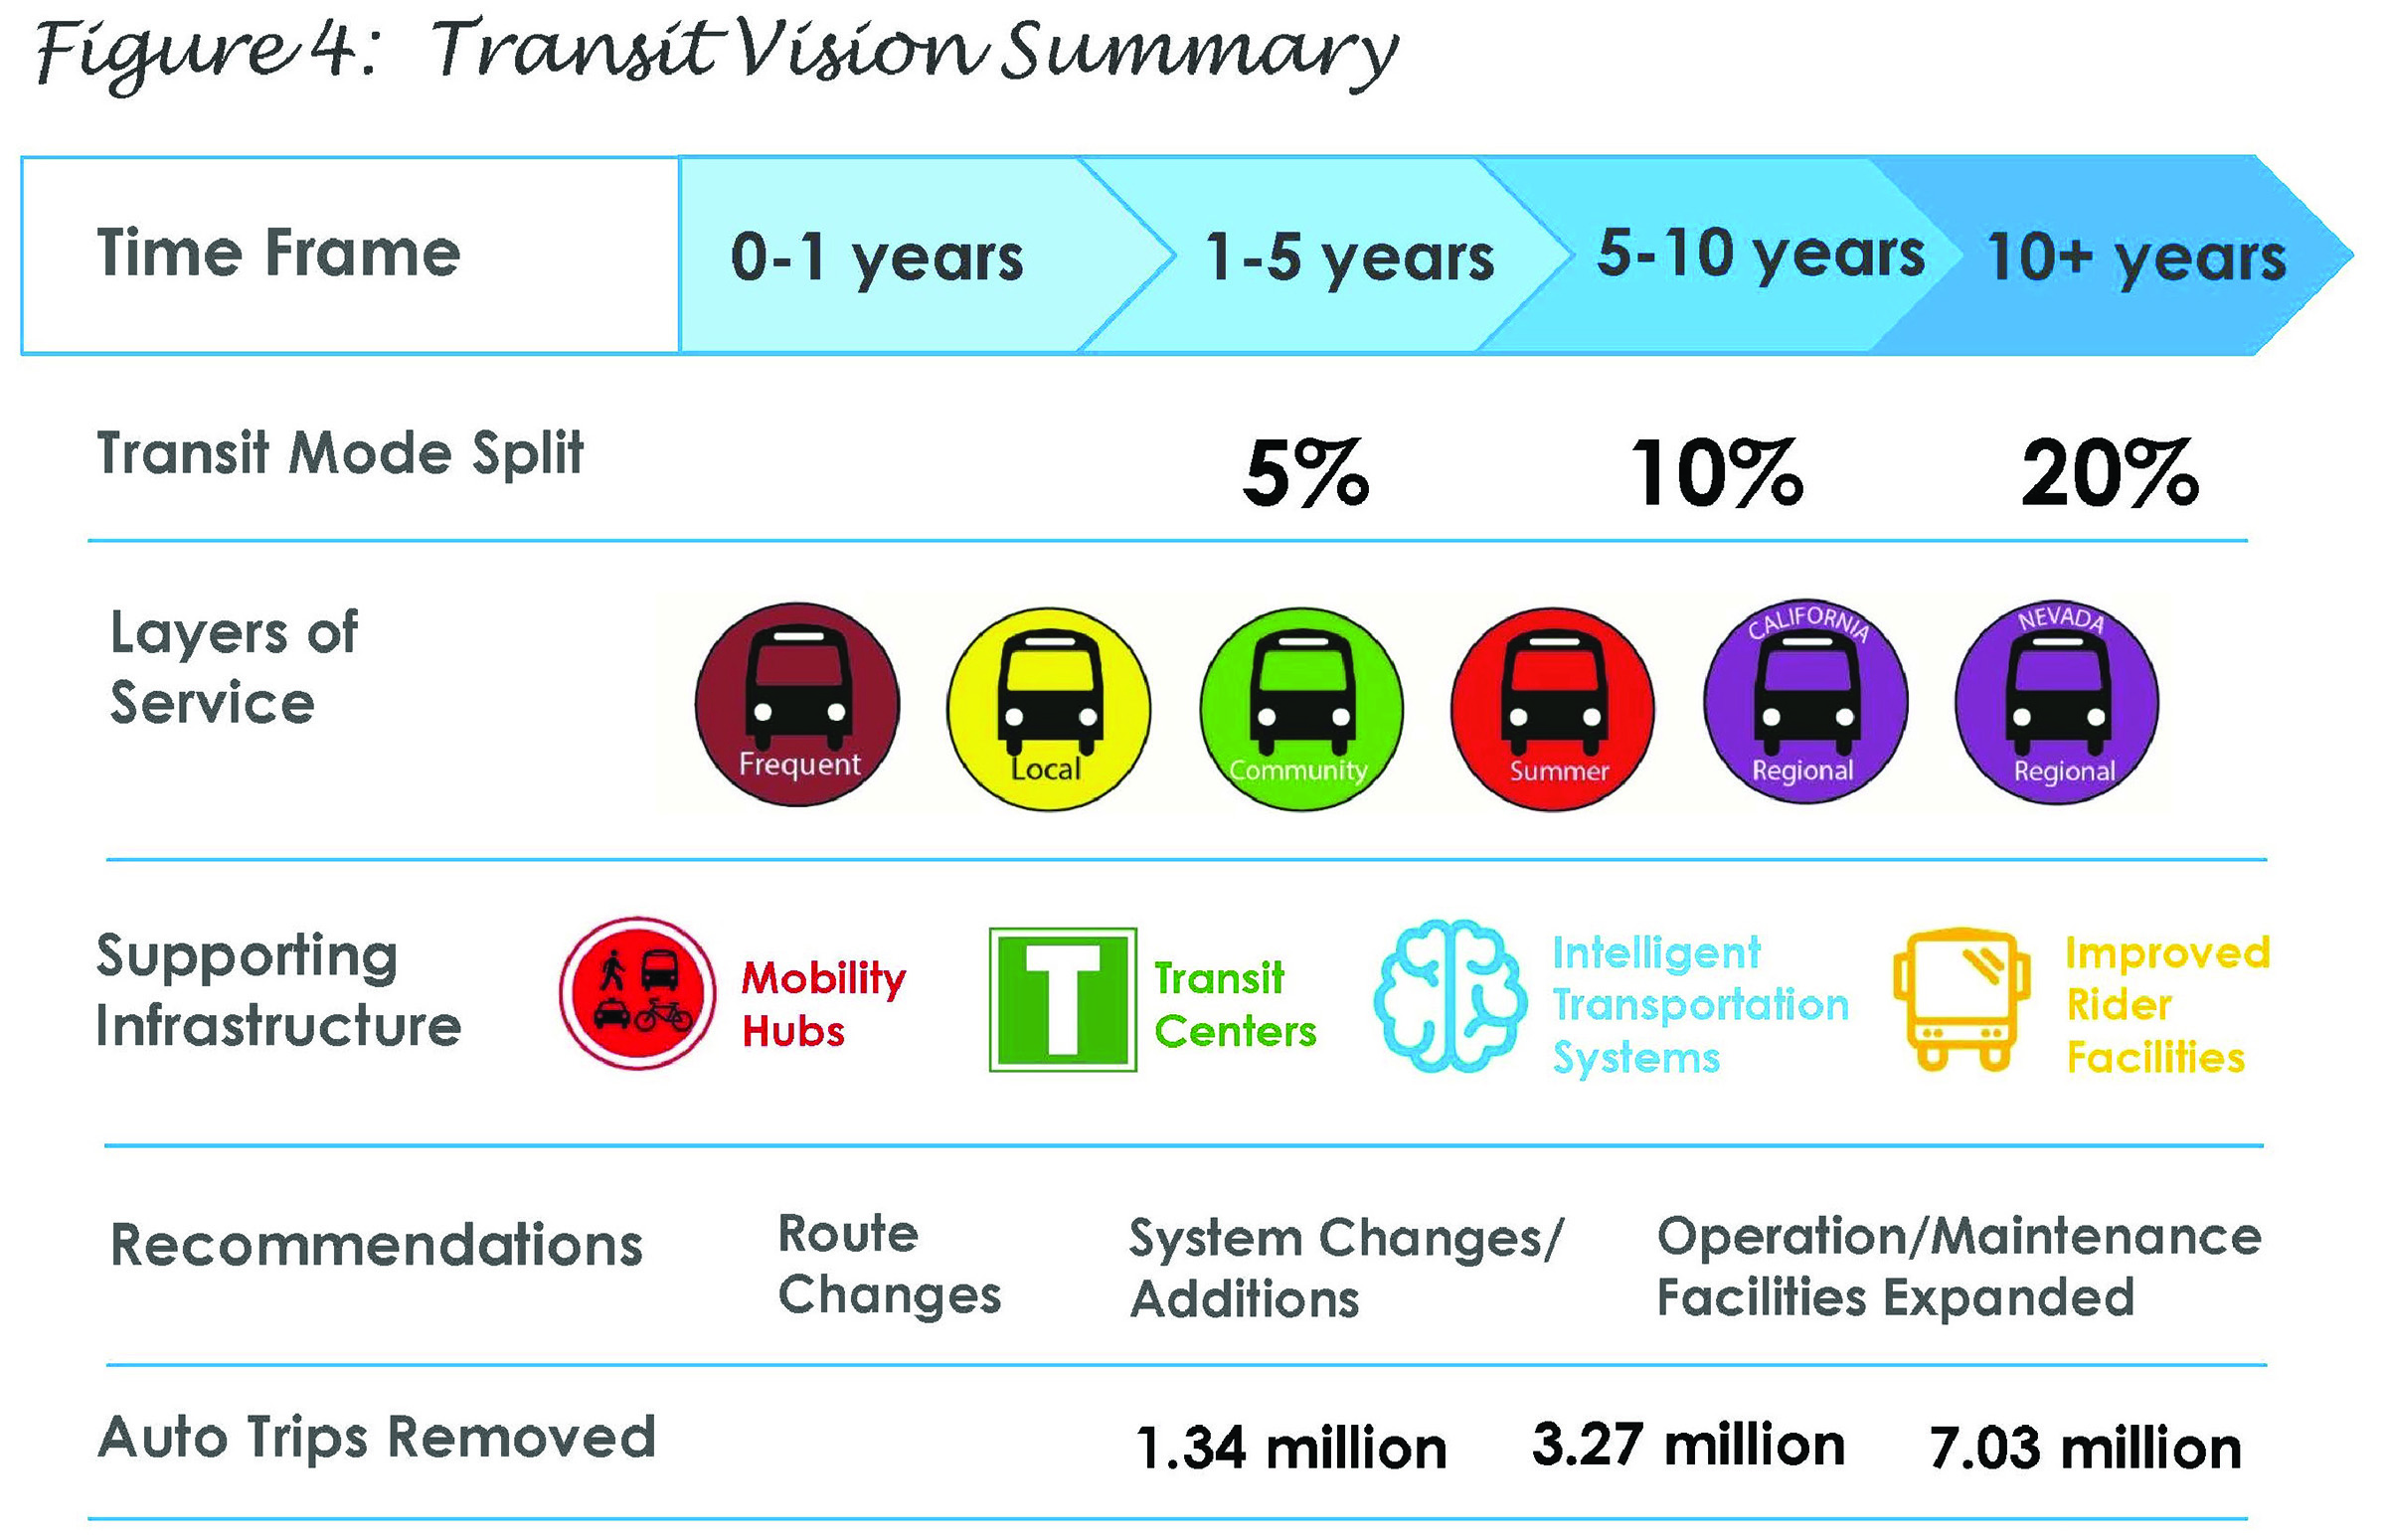 Graphic 4_Transit Vision Summary.jpg